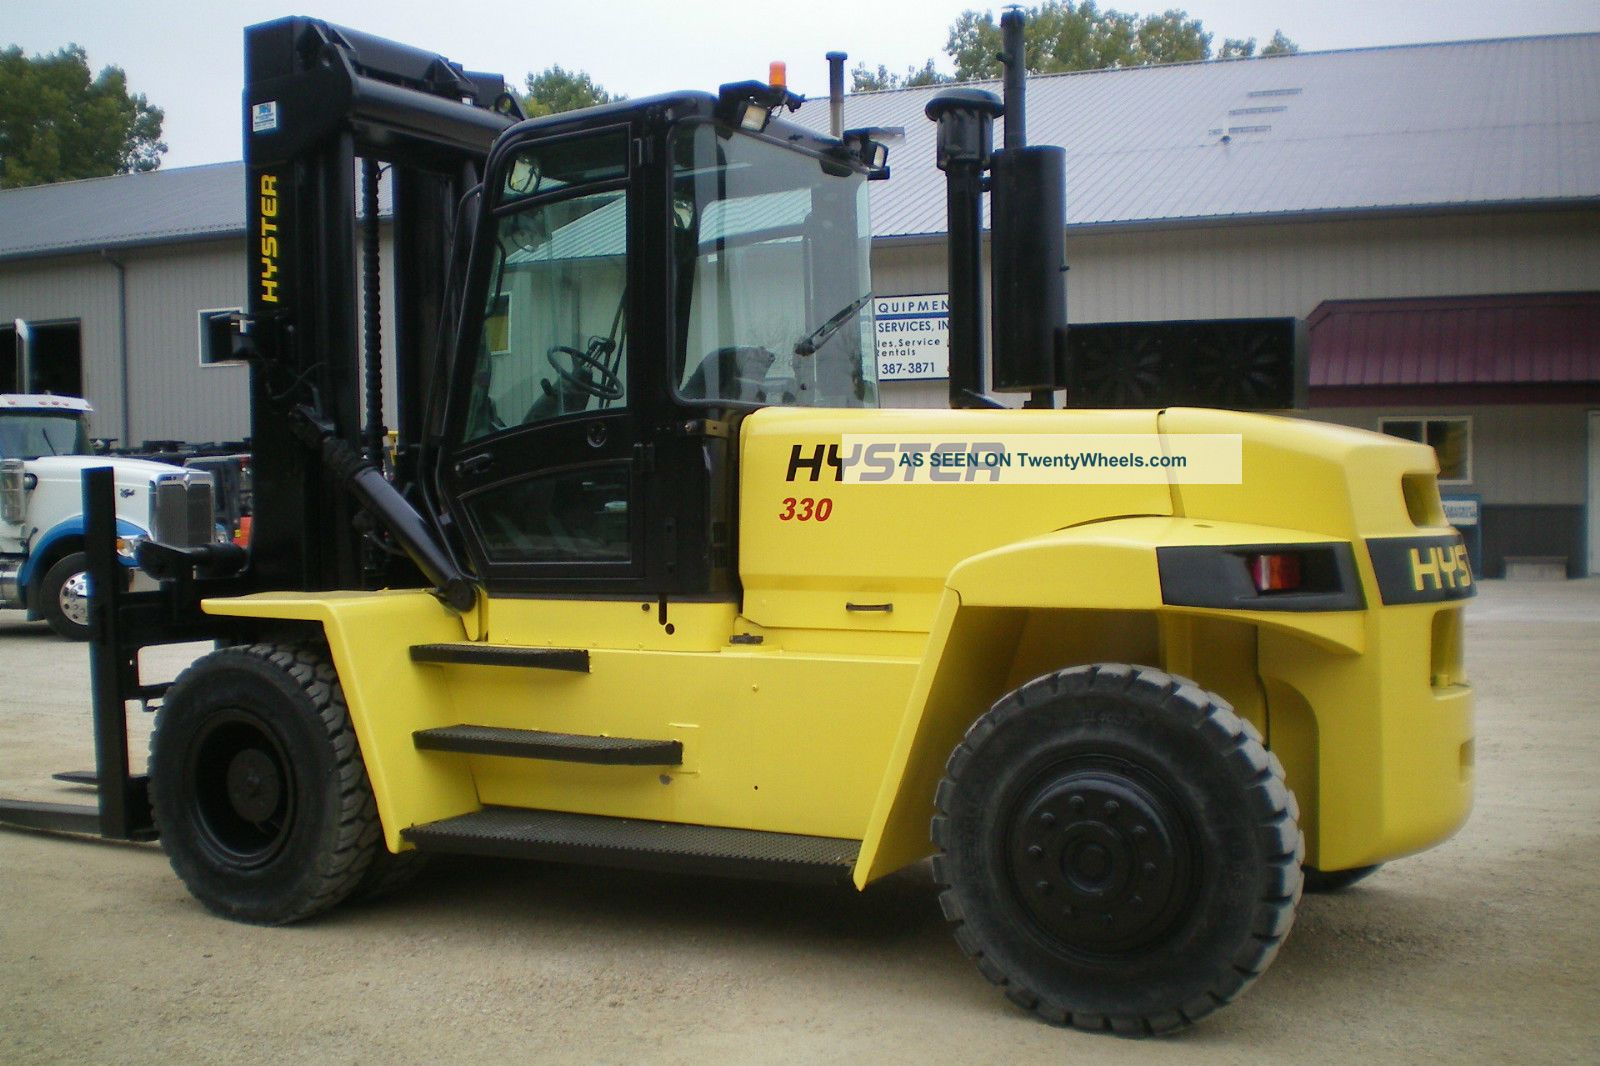 Hyster Forklift Starter Wiring Diagram besides Cat 422s Wiring Diagram moreover Fork Lift Walk Around Diagram together with Forklift Parts Diagram in addition Westerbeke 8kw Wiring Diagram. on towmotor wiring diagram